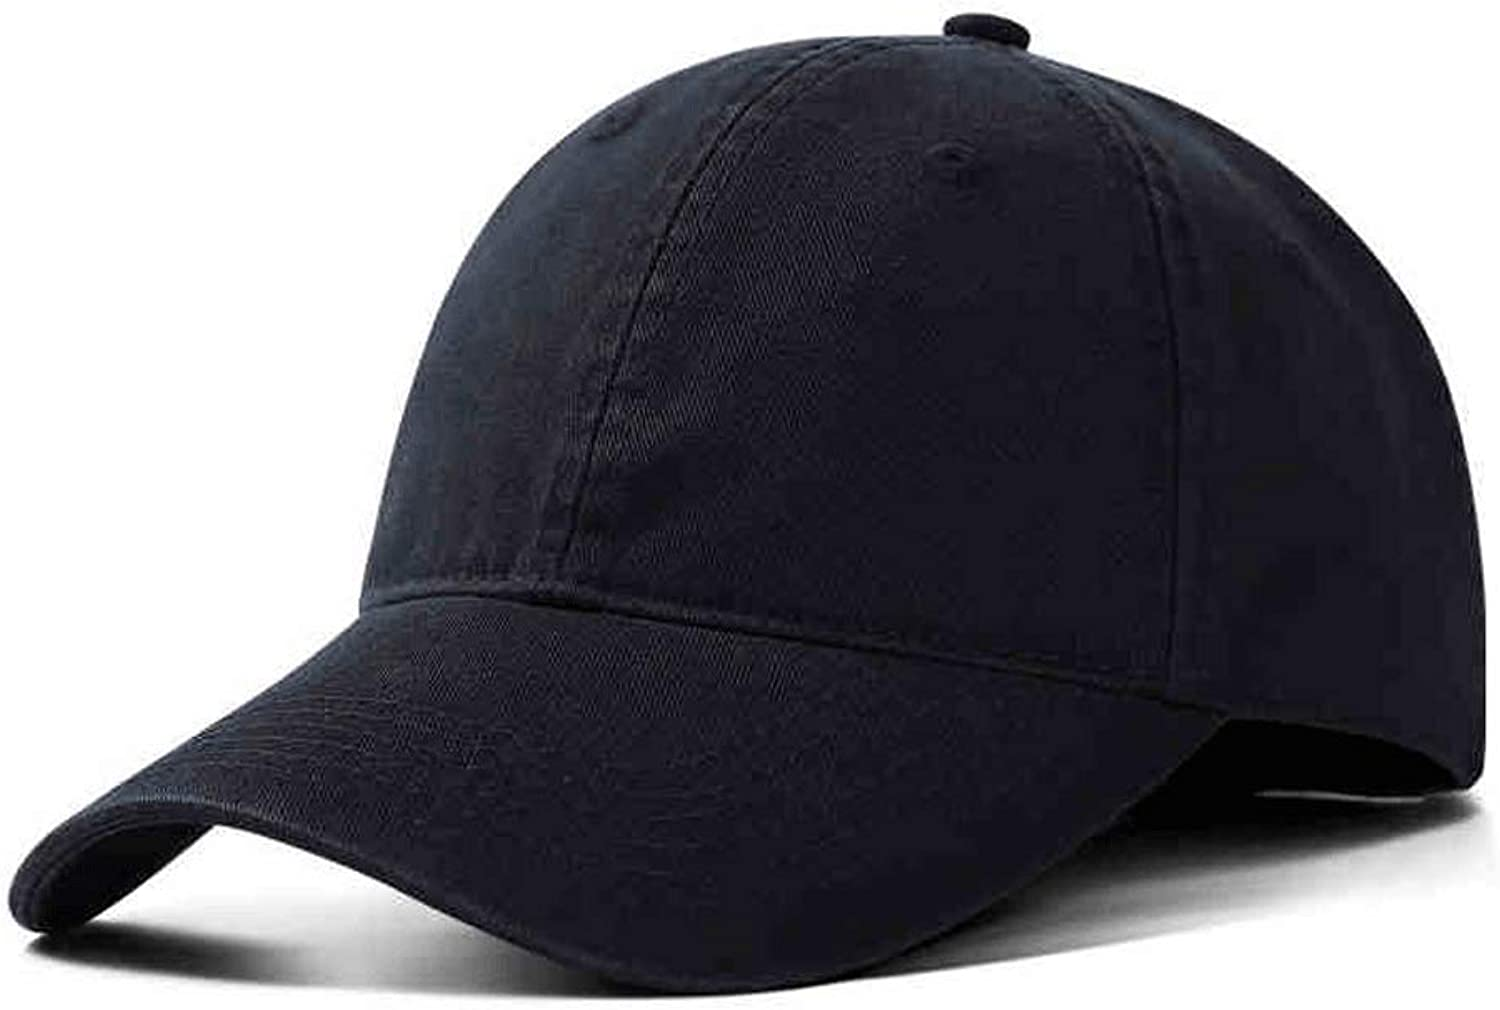 SLH Retro Black Baseball Cap Male and Female Cap Curved Hat Long Eaves Pure color, Sun Hat